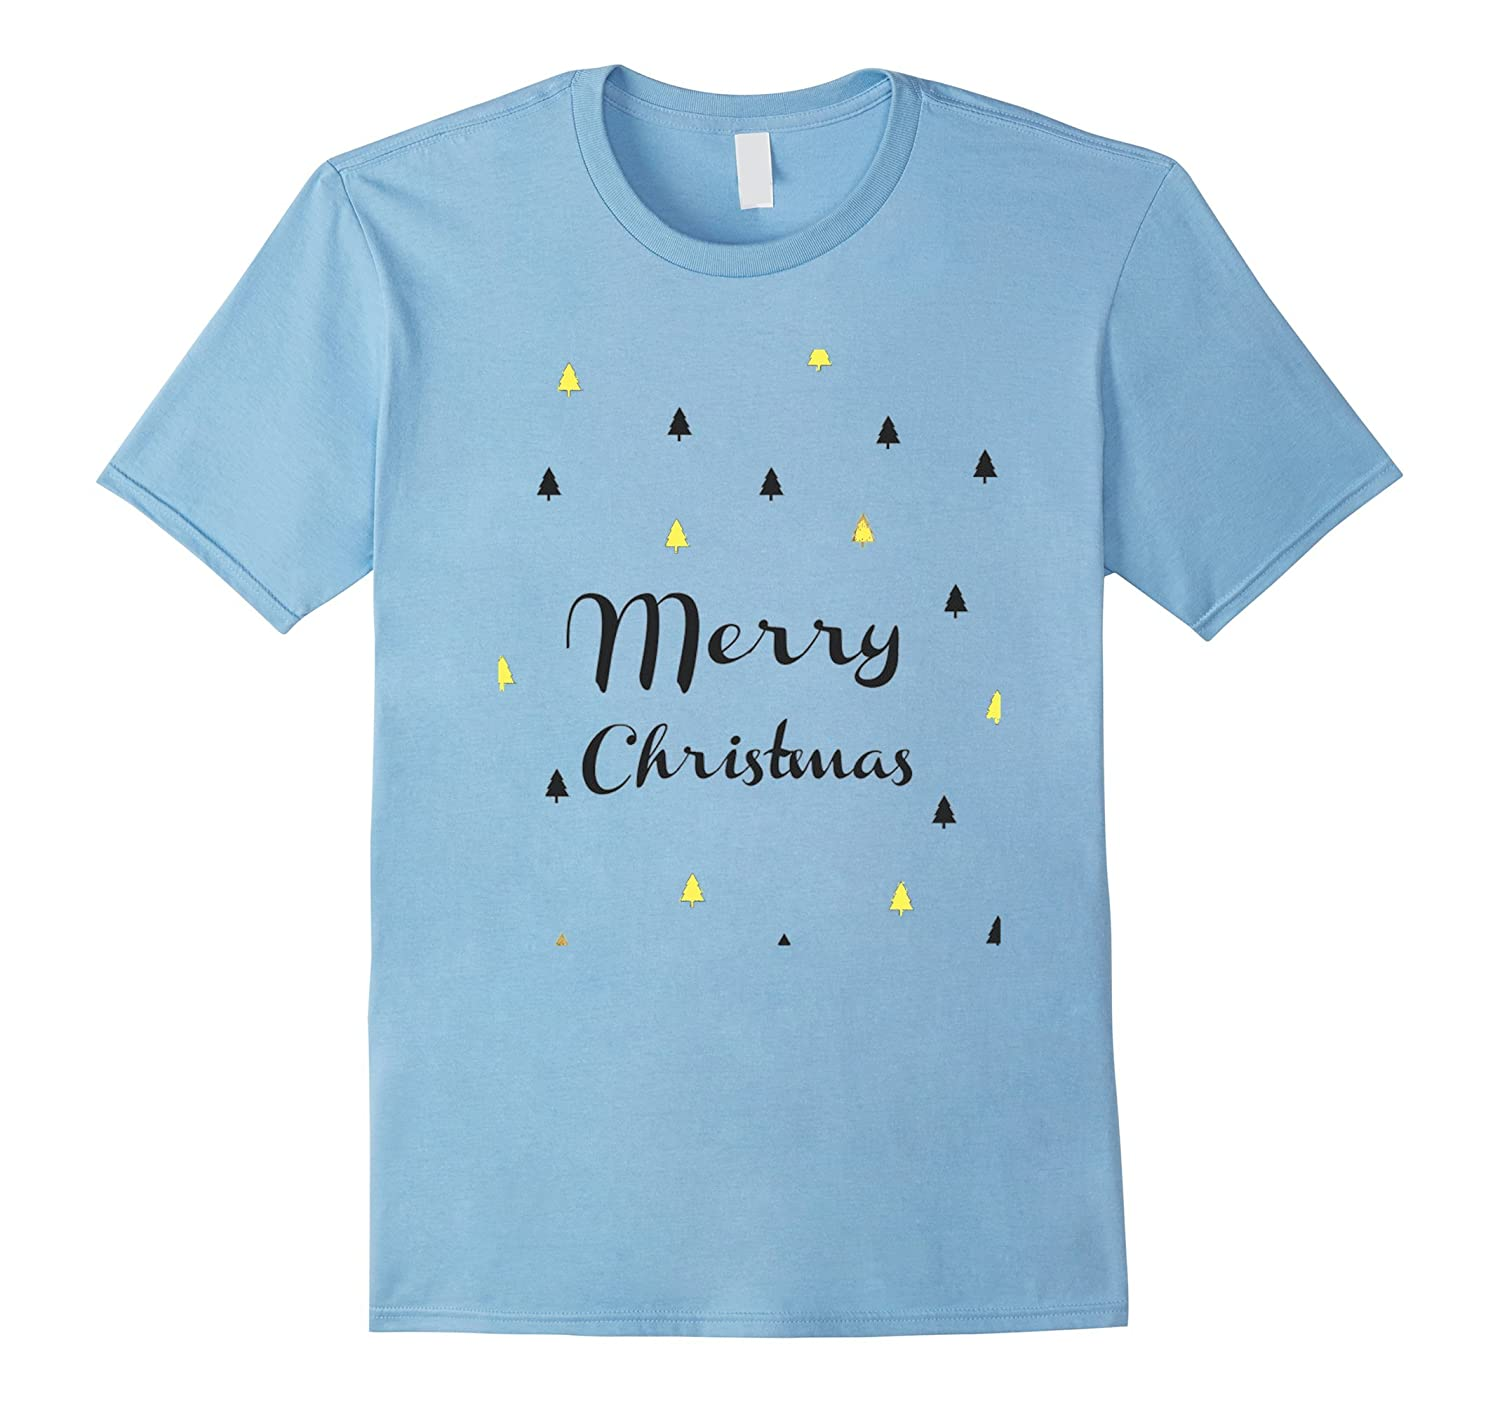 MERRY CHRISTMAS AND HAPPY NEW YEAR T SHIRT-CL